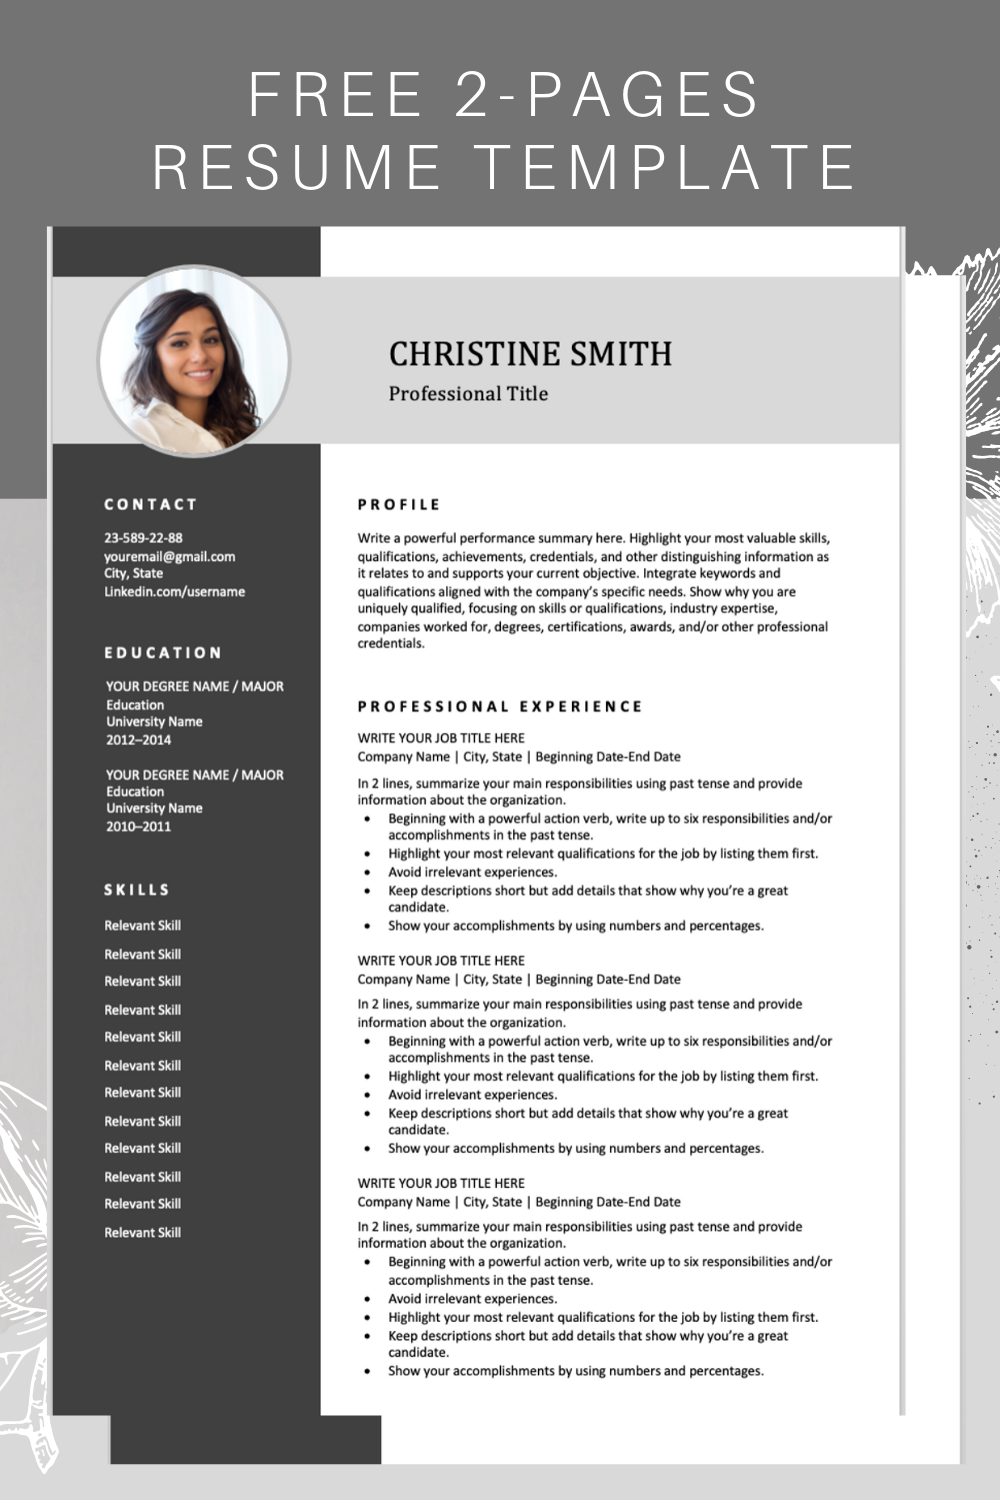 Download this professional resume template. It includes